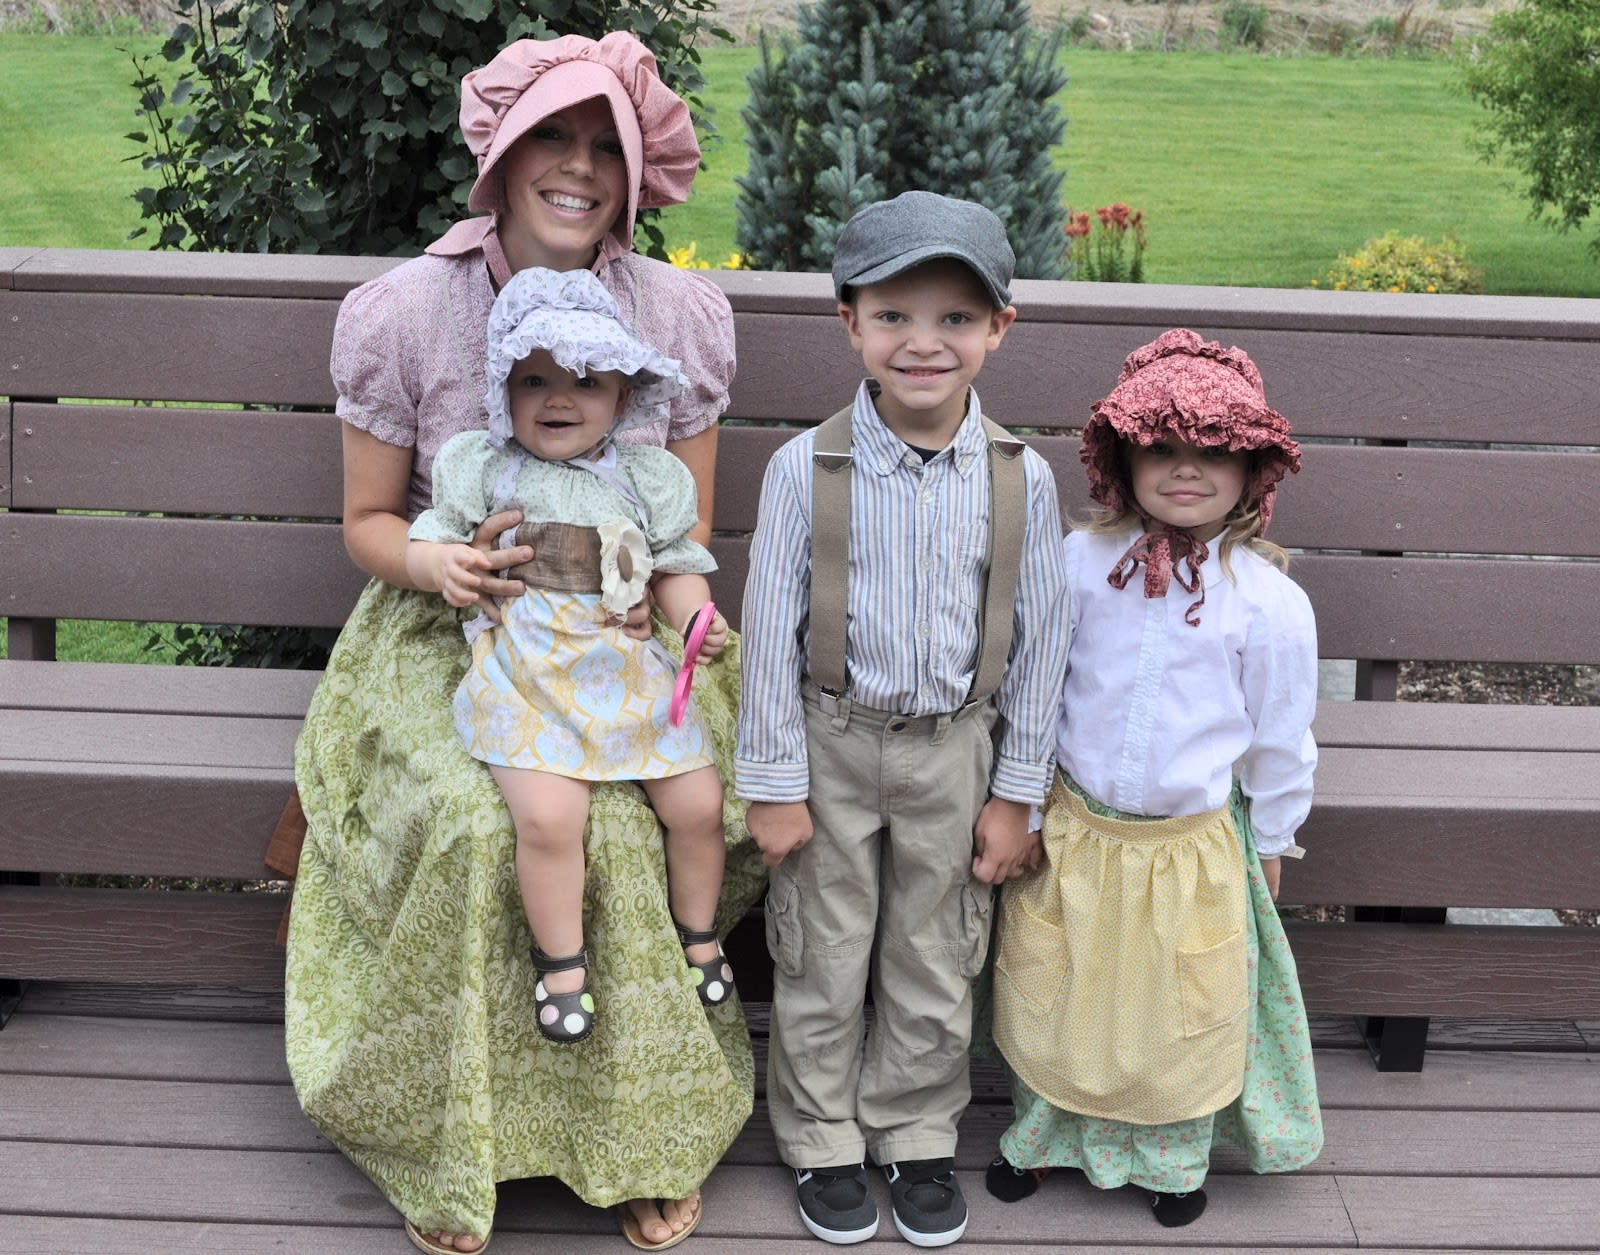 Family dressed up as pioneers